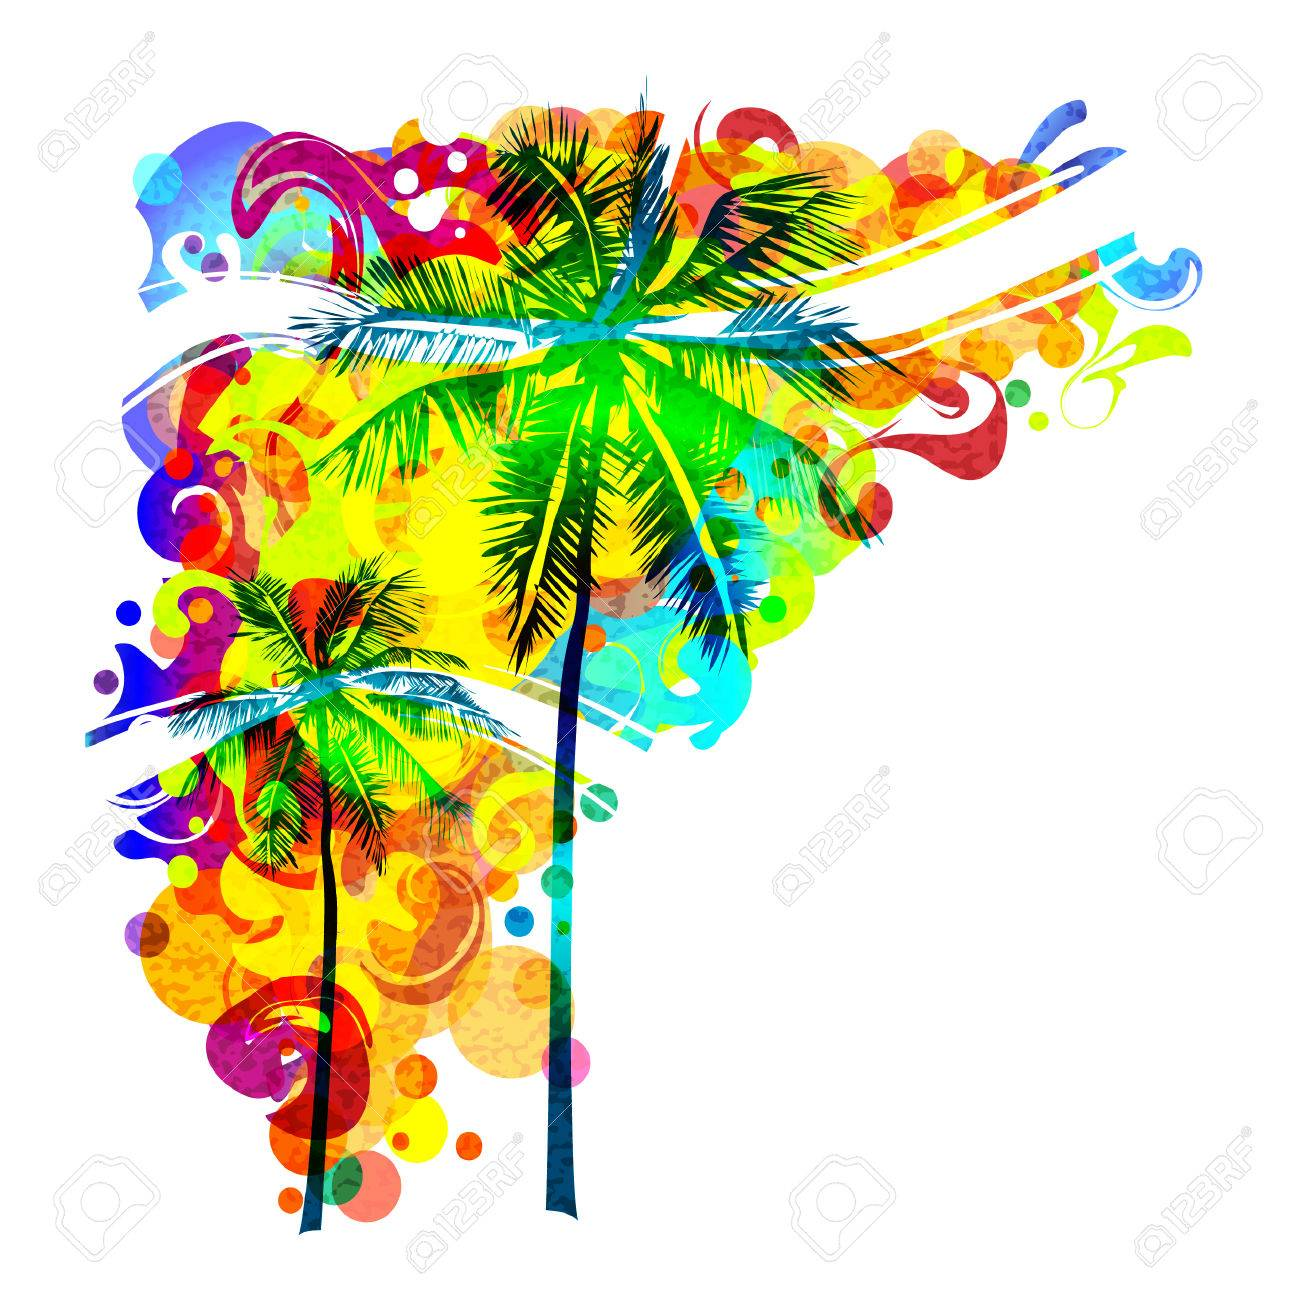 Beach Party Among Palm Trees. Illustration Of Bright Trees On ...